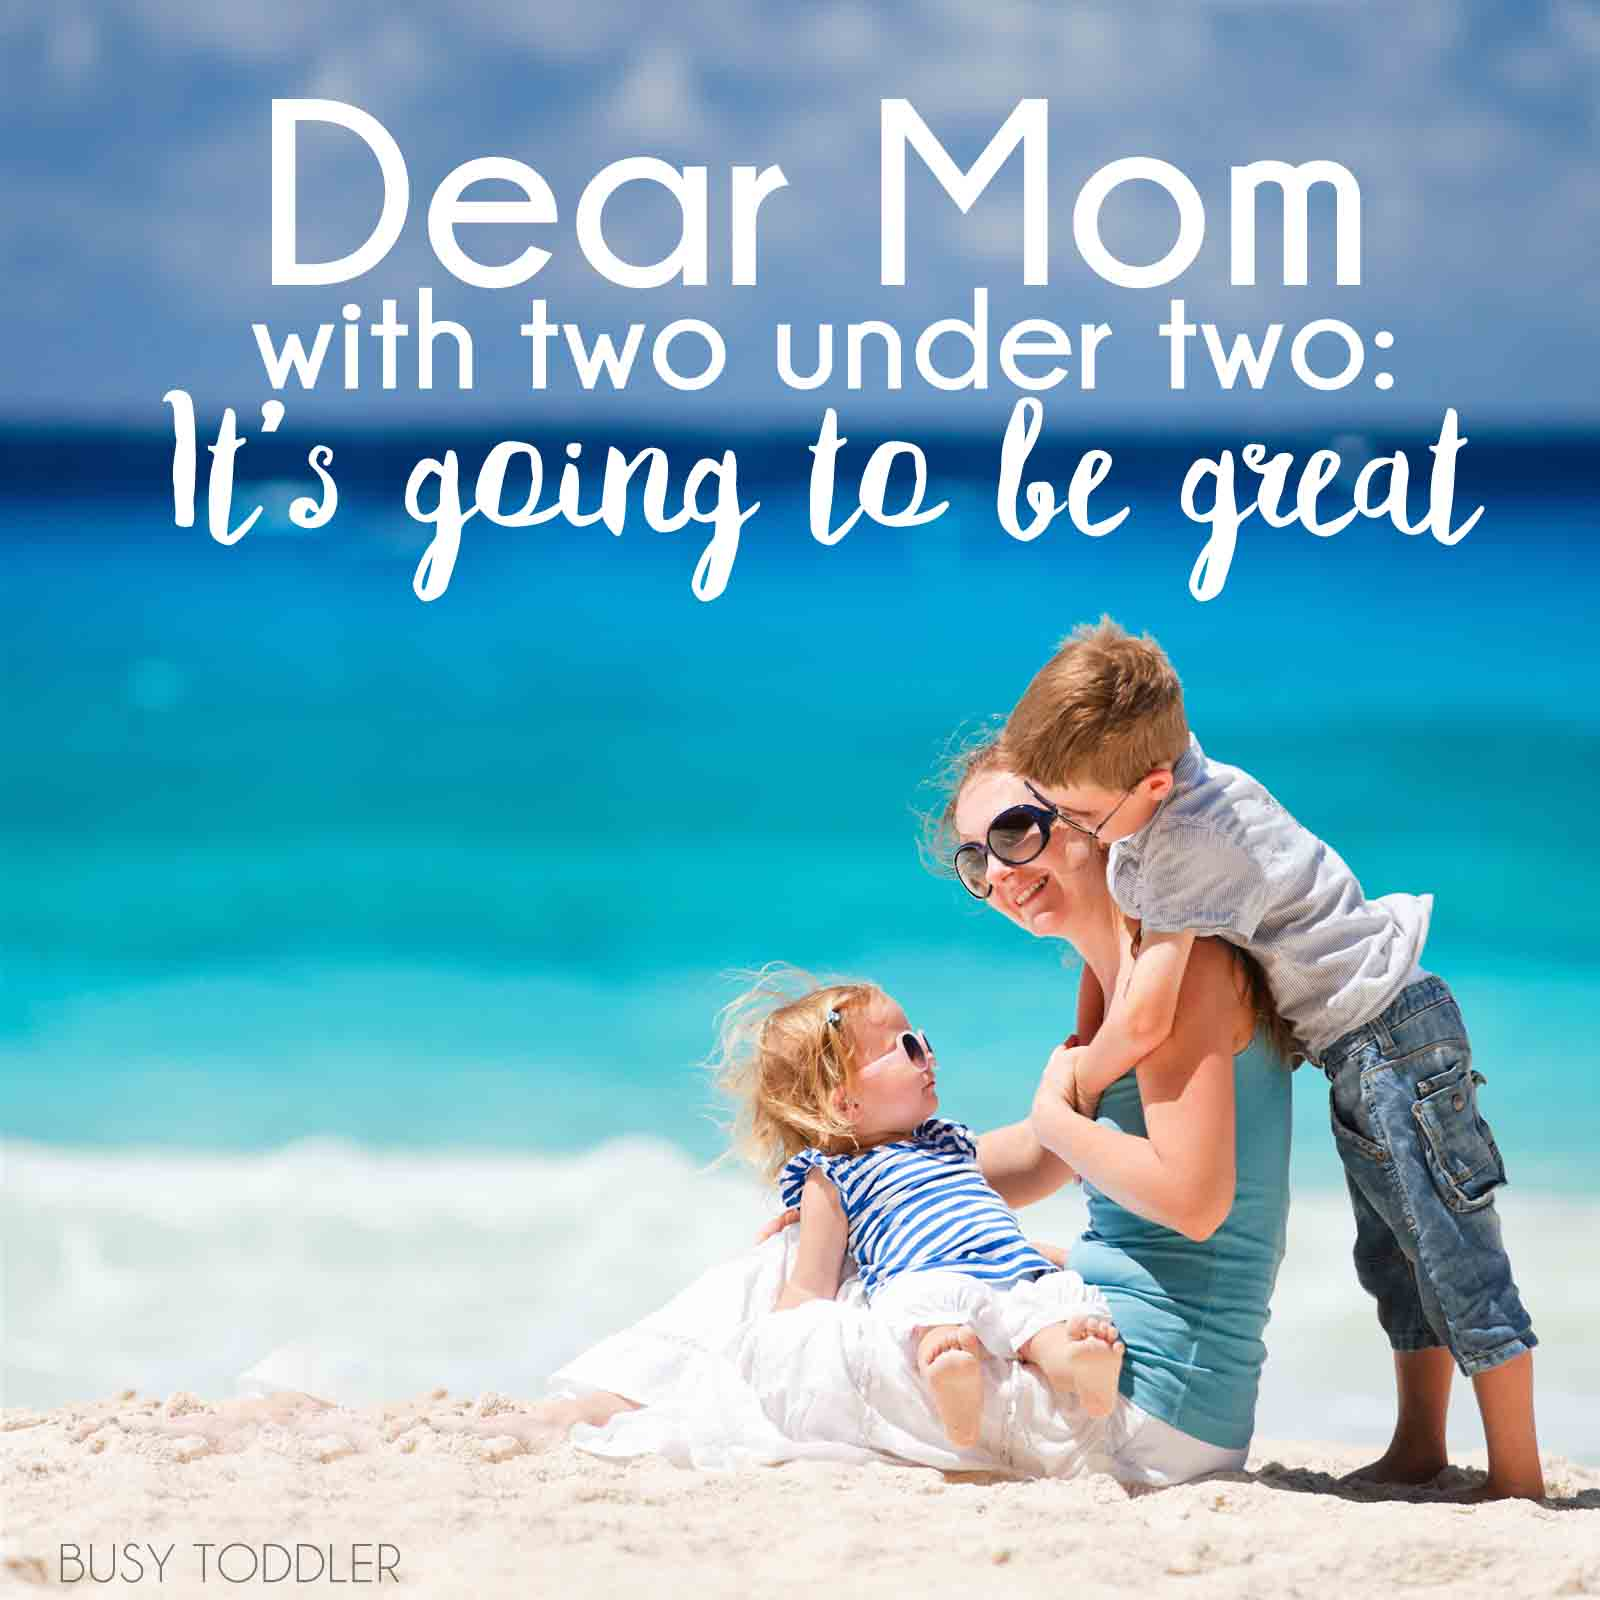 TWO UNDER TWO: Encouraging words for families with two under two; an open letter to Moms with a newborn and a toddler